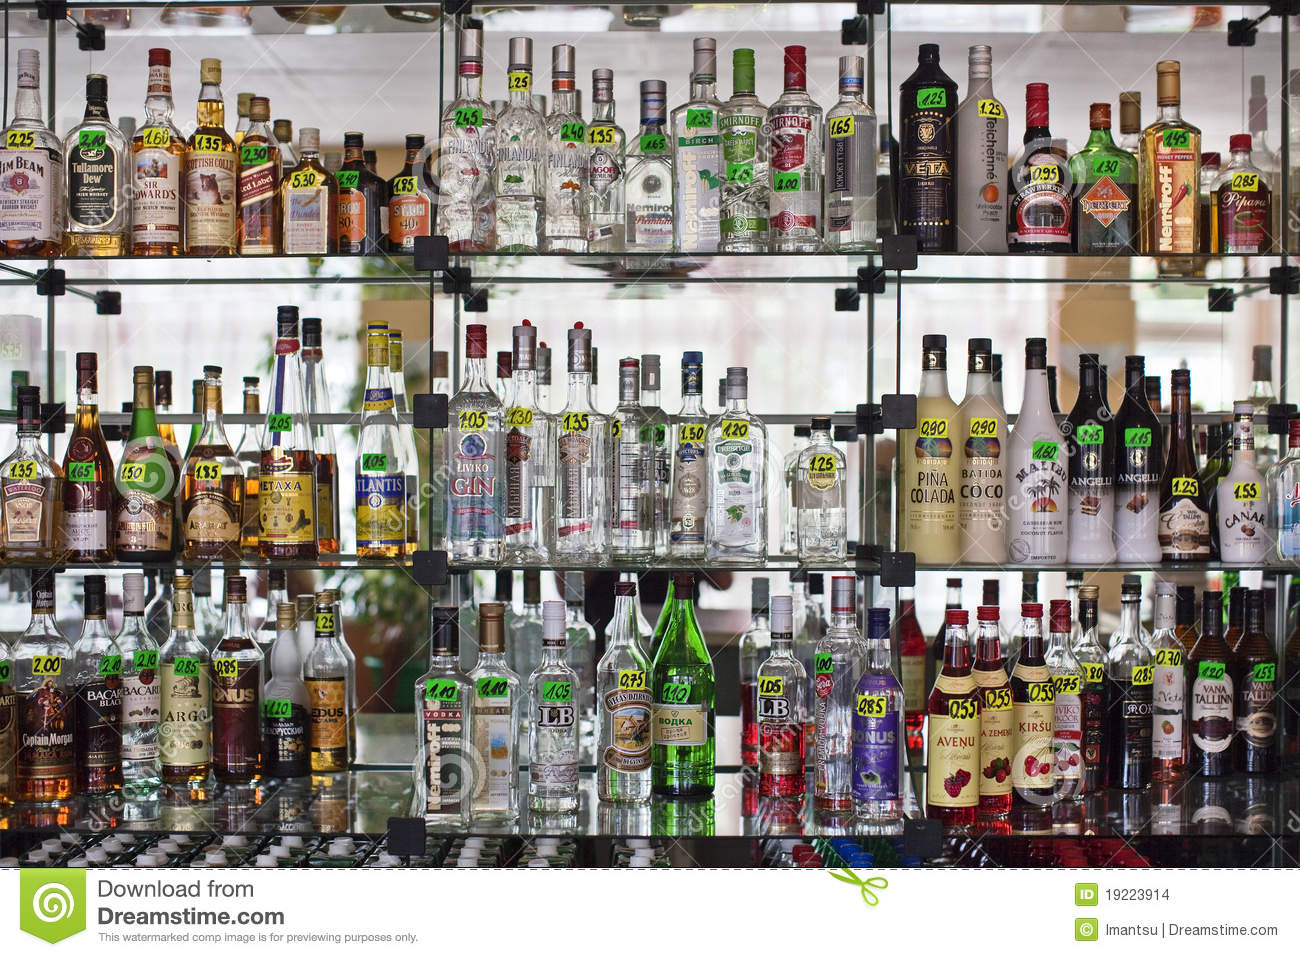 How To Create The Perfect Man Cave moreover Pallet Wine Rack in addition Wine Tasting Rooms moreover Mini Bar Liquor Cabi together with Scores TGI Fridays New Jersey Bars Busted Substituting Cheap Alcohol Shelf Scotch Statewide Crackdown. on liquor bottles on bar walls